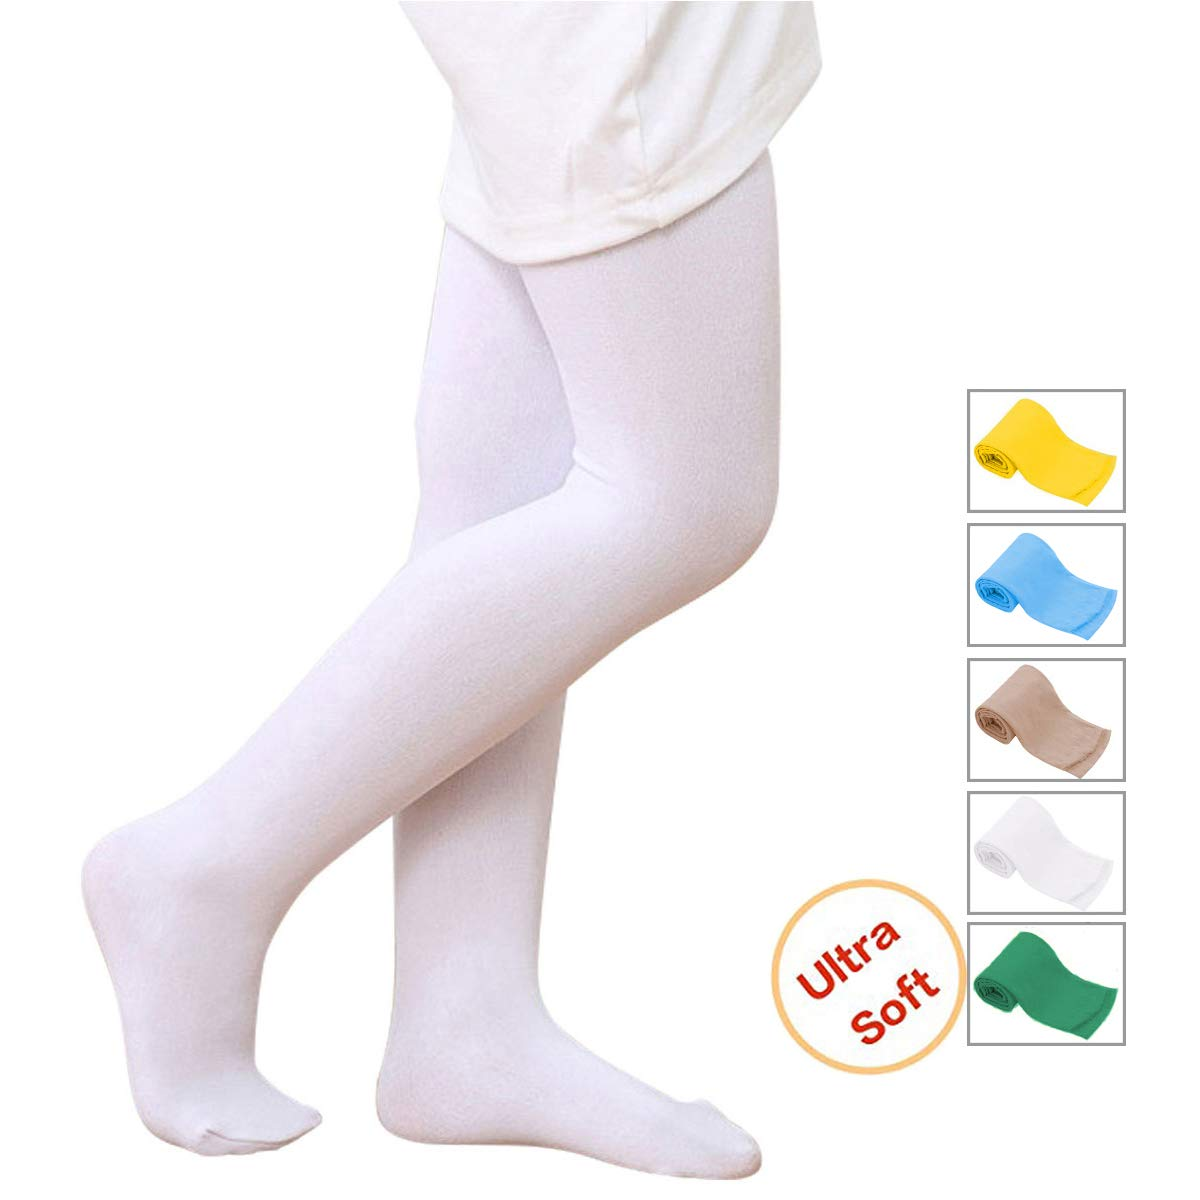 83ac2ad68 Girls  Ultra Soft Ballet Dance Footed Tight Knit Casual School ...